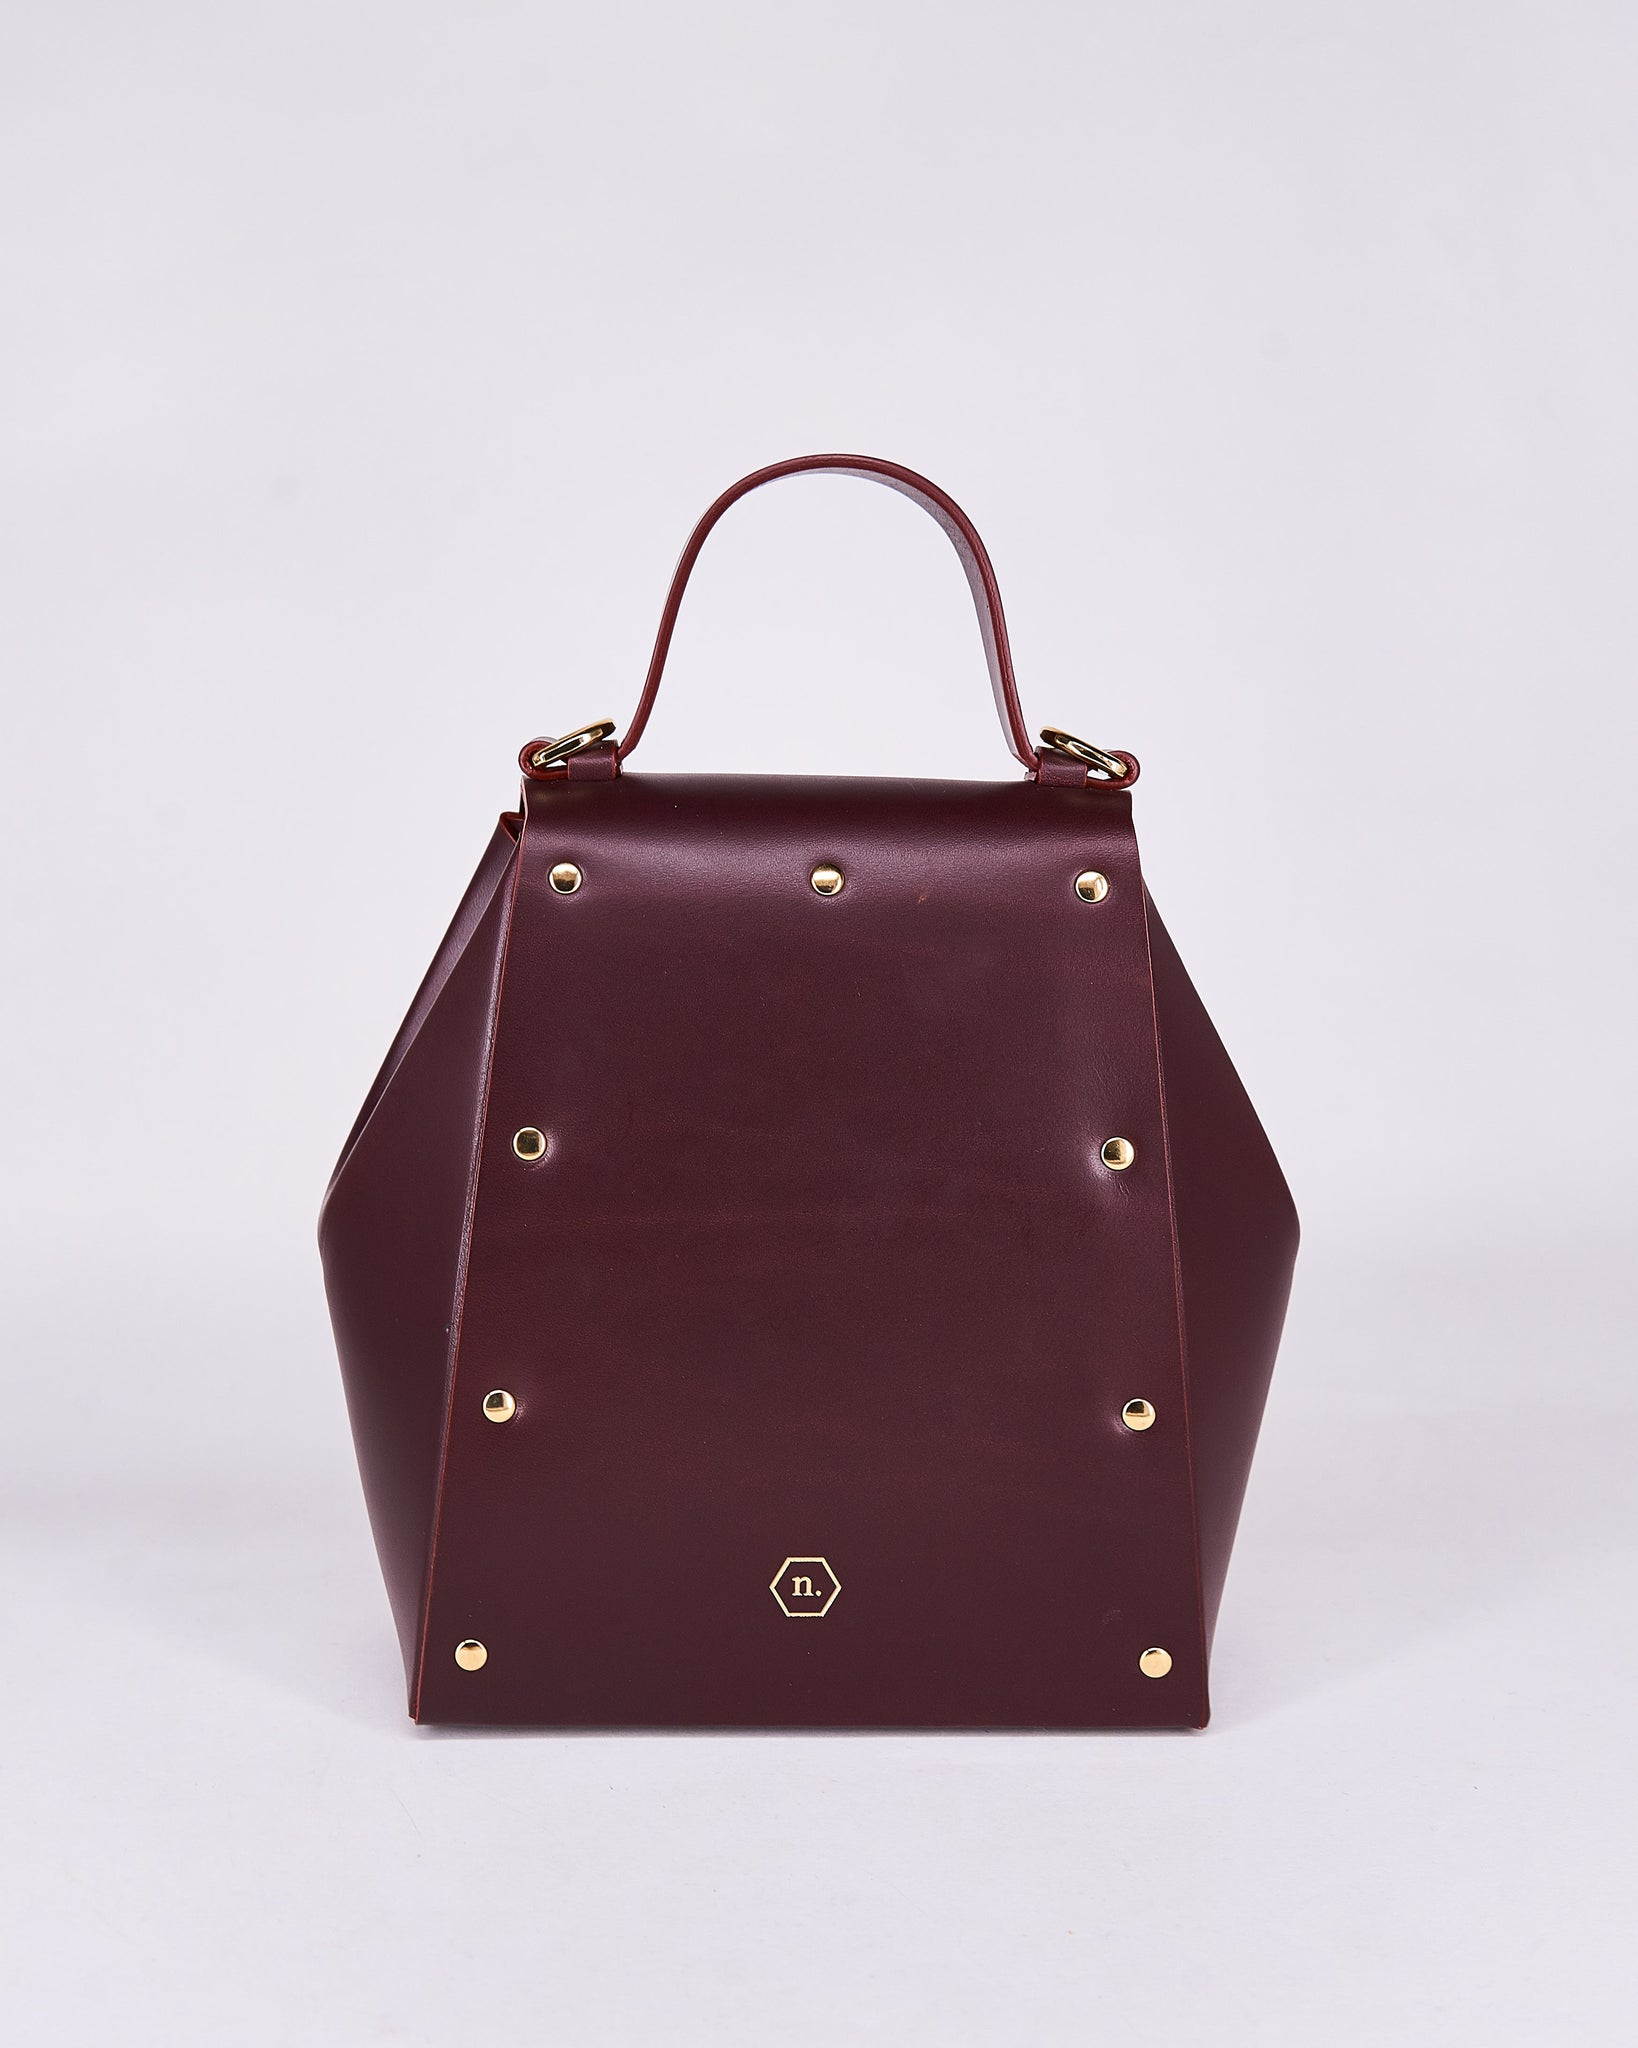 Hex Bag-Bordeaux-Leather-Designed by Nuovum-Localdesigners-Barcelona-Back